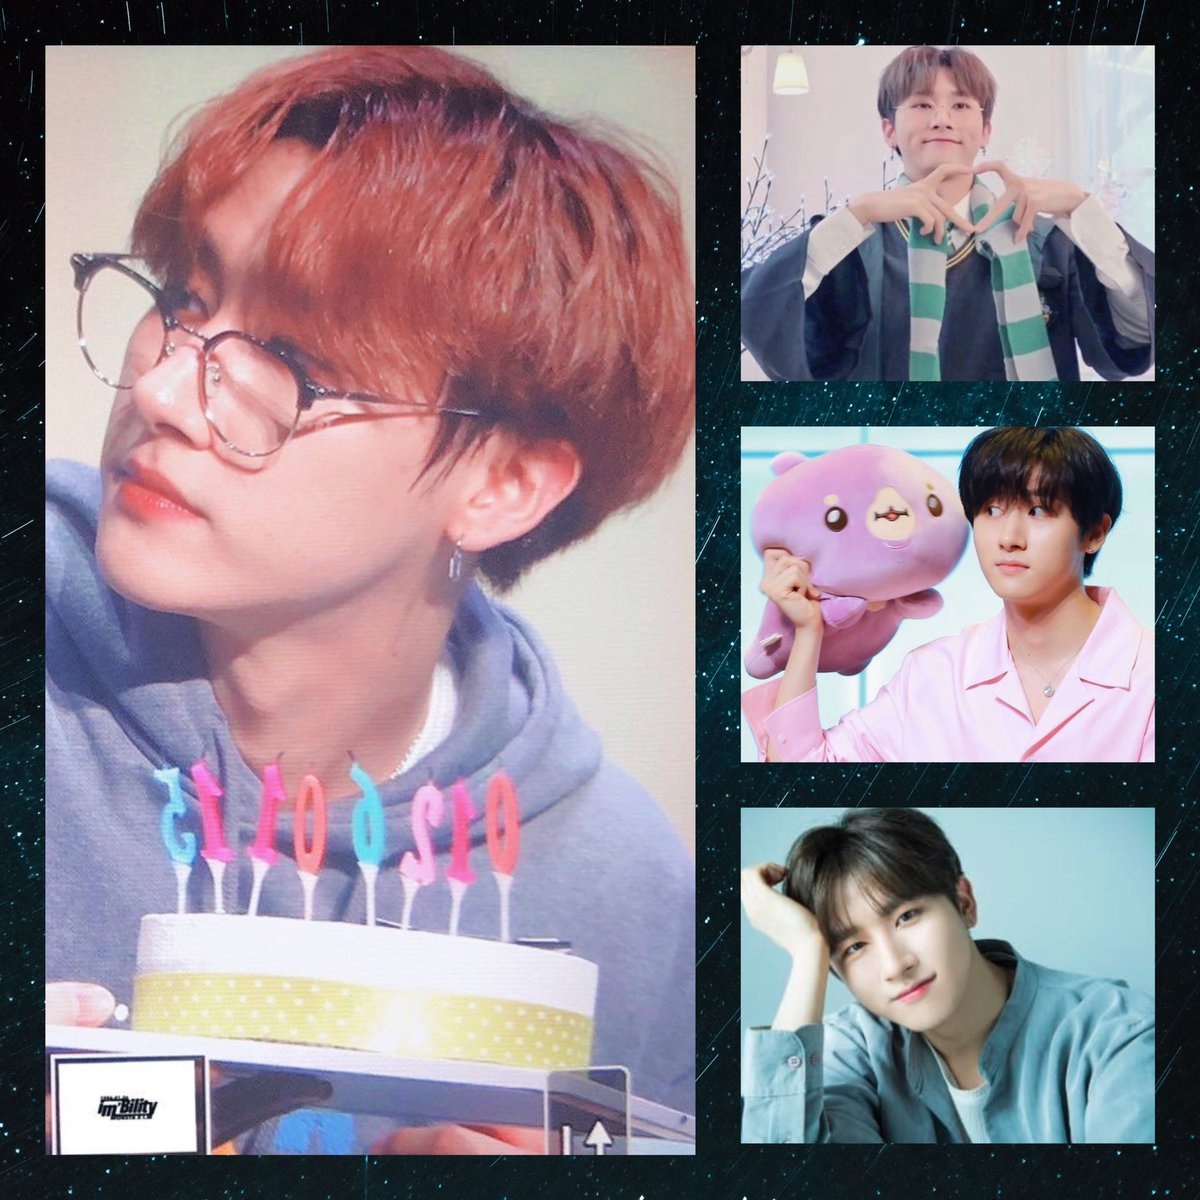 @MONBEBEnt @OfficialMonstaX Happy birthday 🎉  #HBDtoIM @OfficialMonstaX  #올겨울_IM으로_충분해 #IMYourNightView